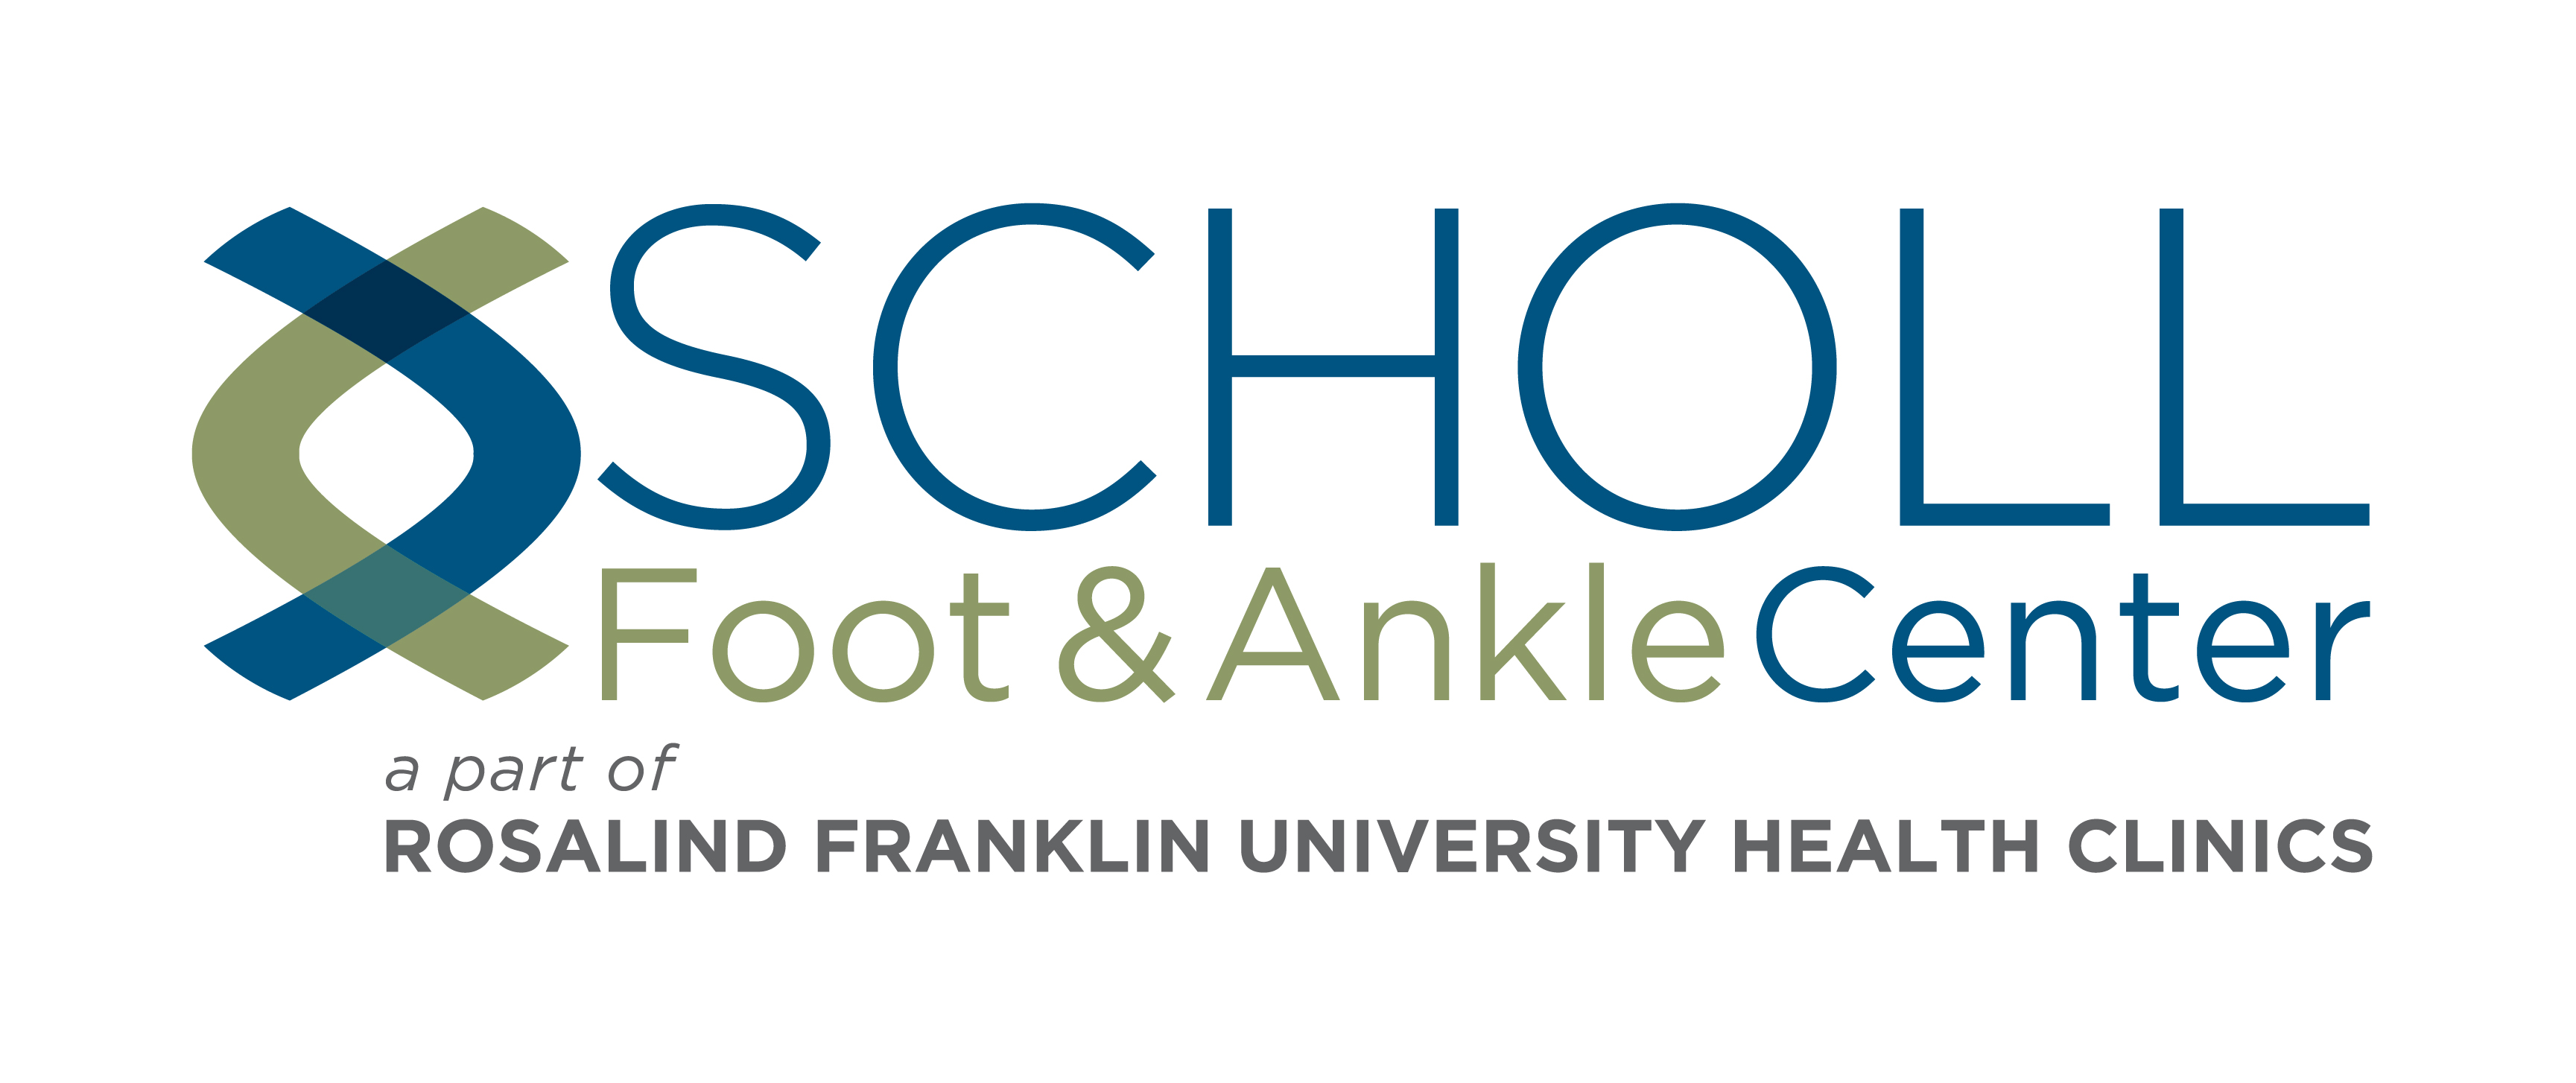 Scholl Foot and Ankle Center